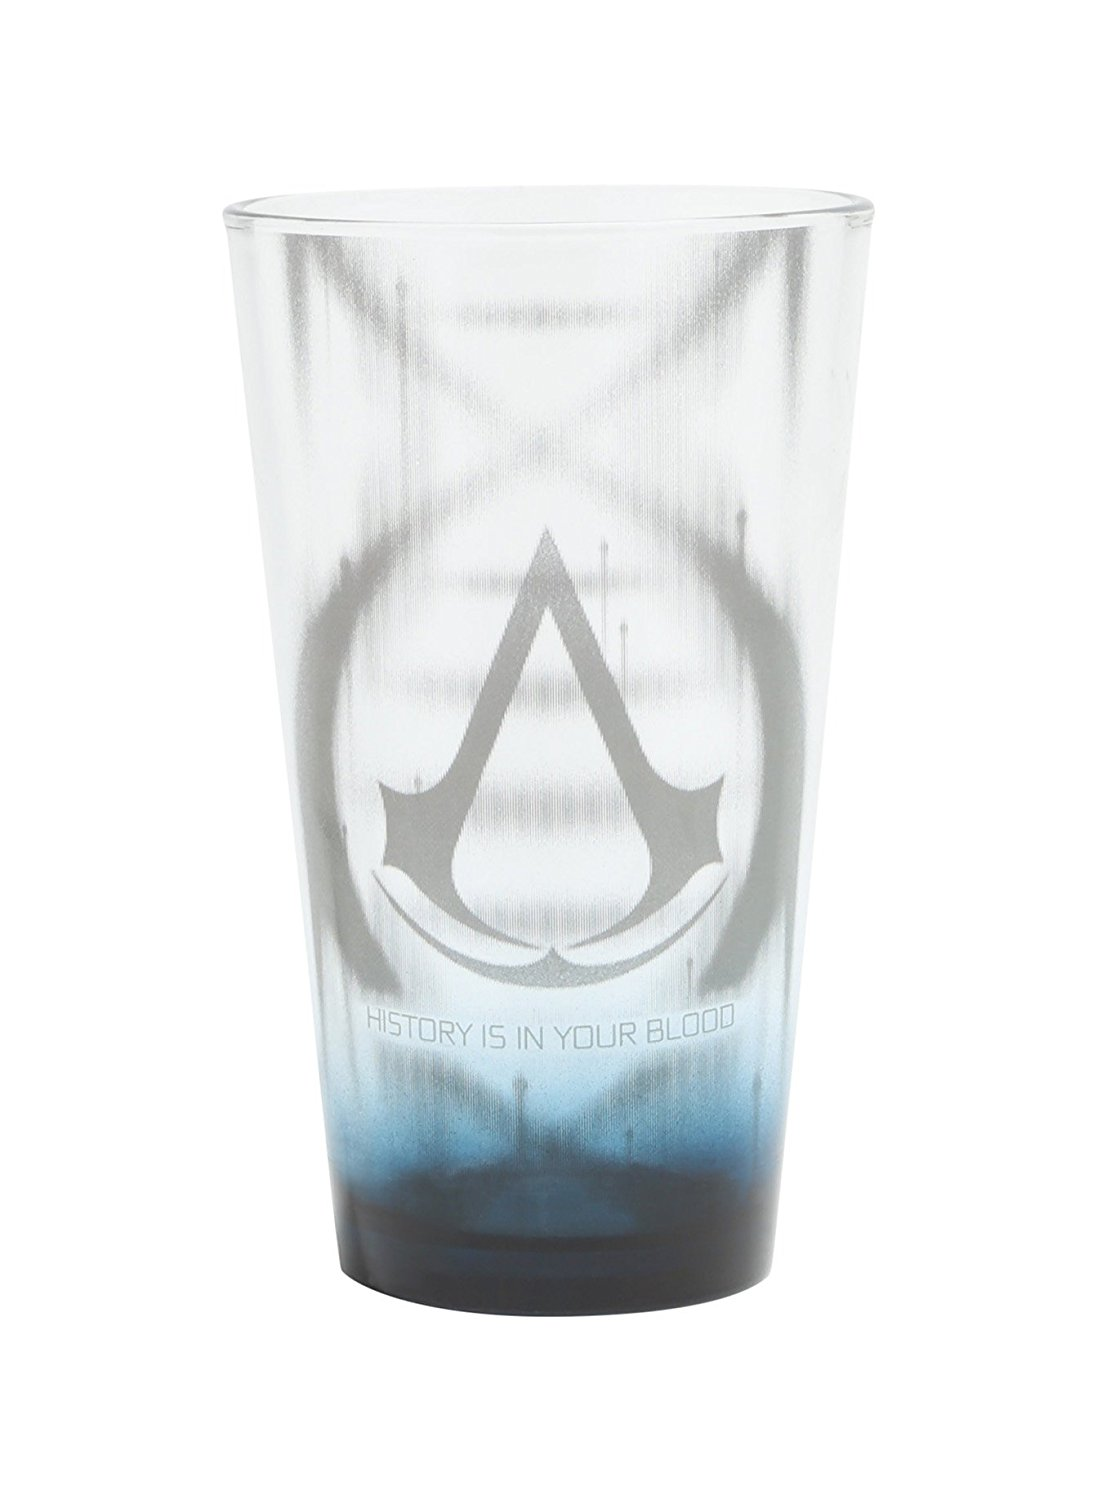 Assassin's Creed Find Your Past 16 oz Pint Glass by Surreal Entertainment